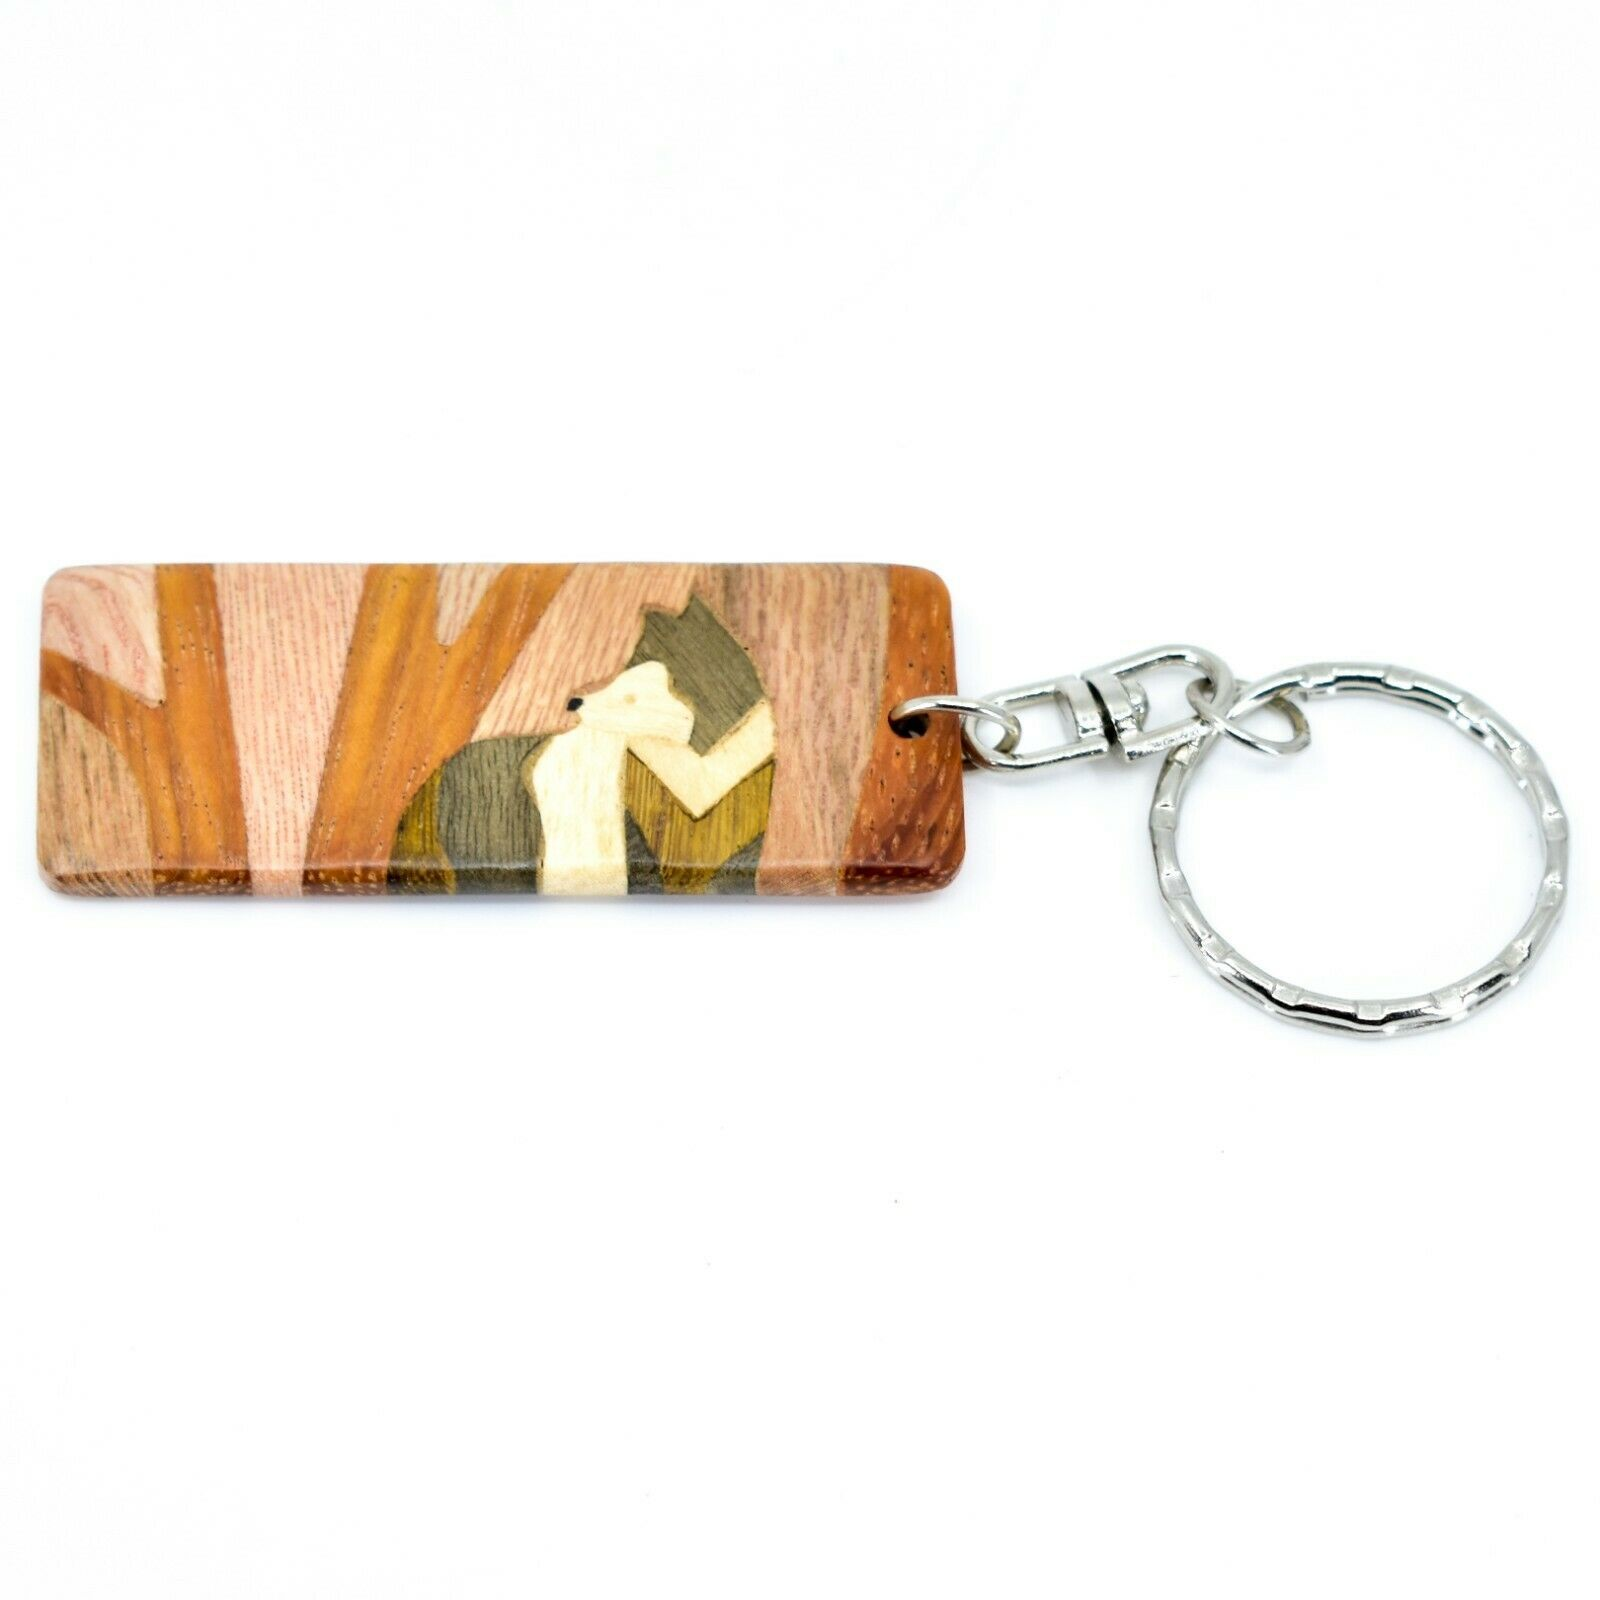 Northwoods Wooden Parquetry Rustic Standing Wolf in Woods Design Tile Keychain